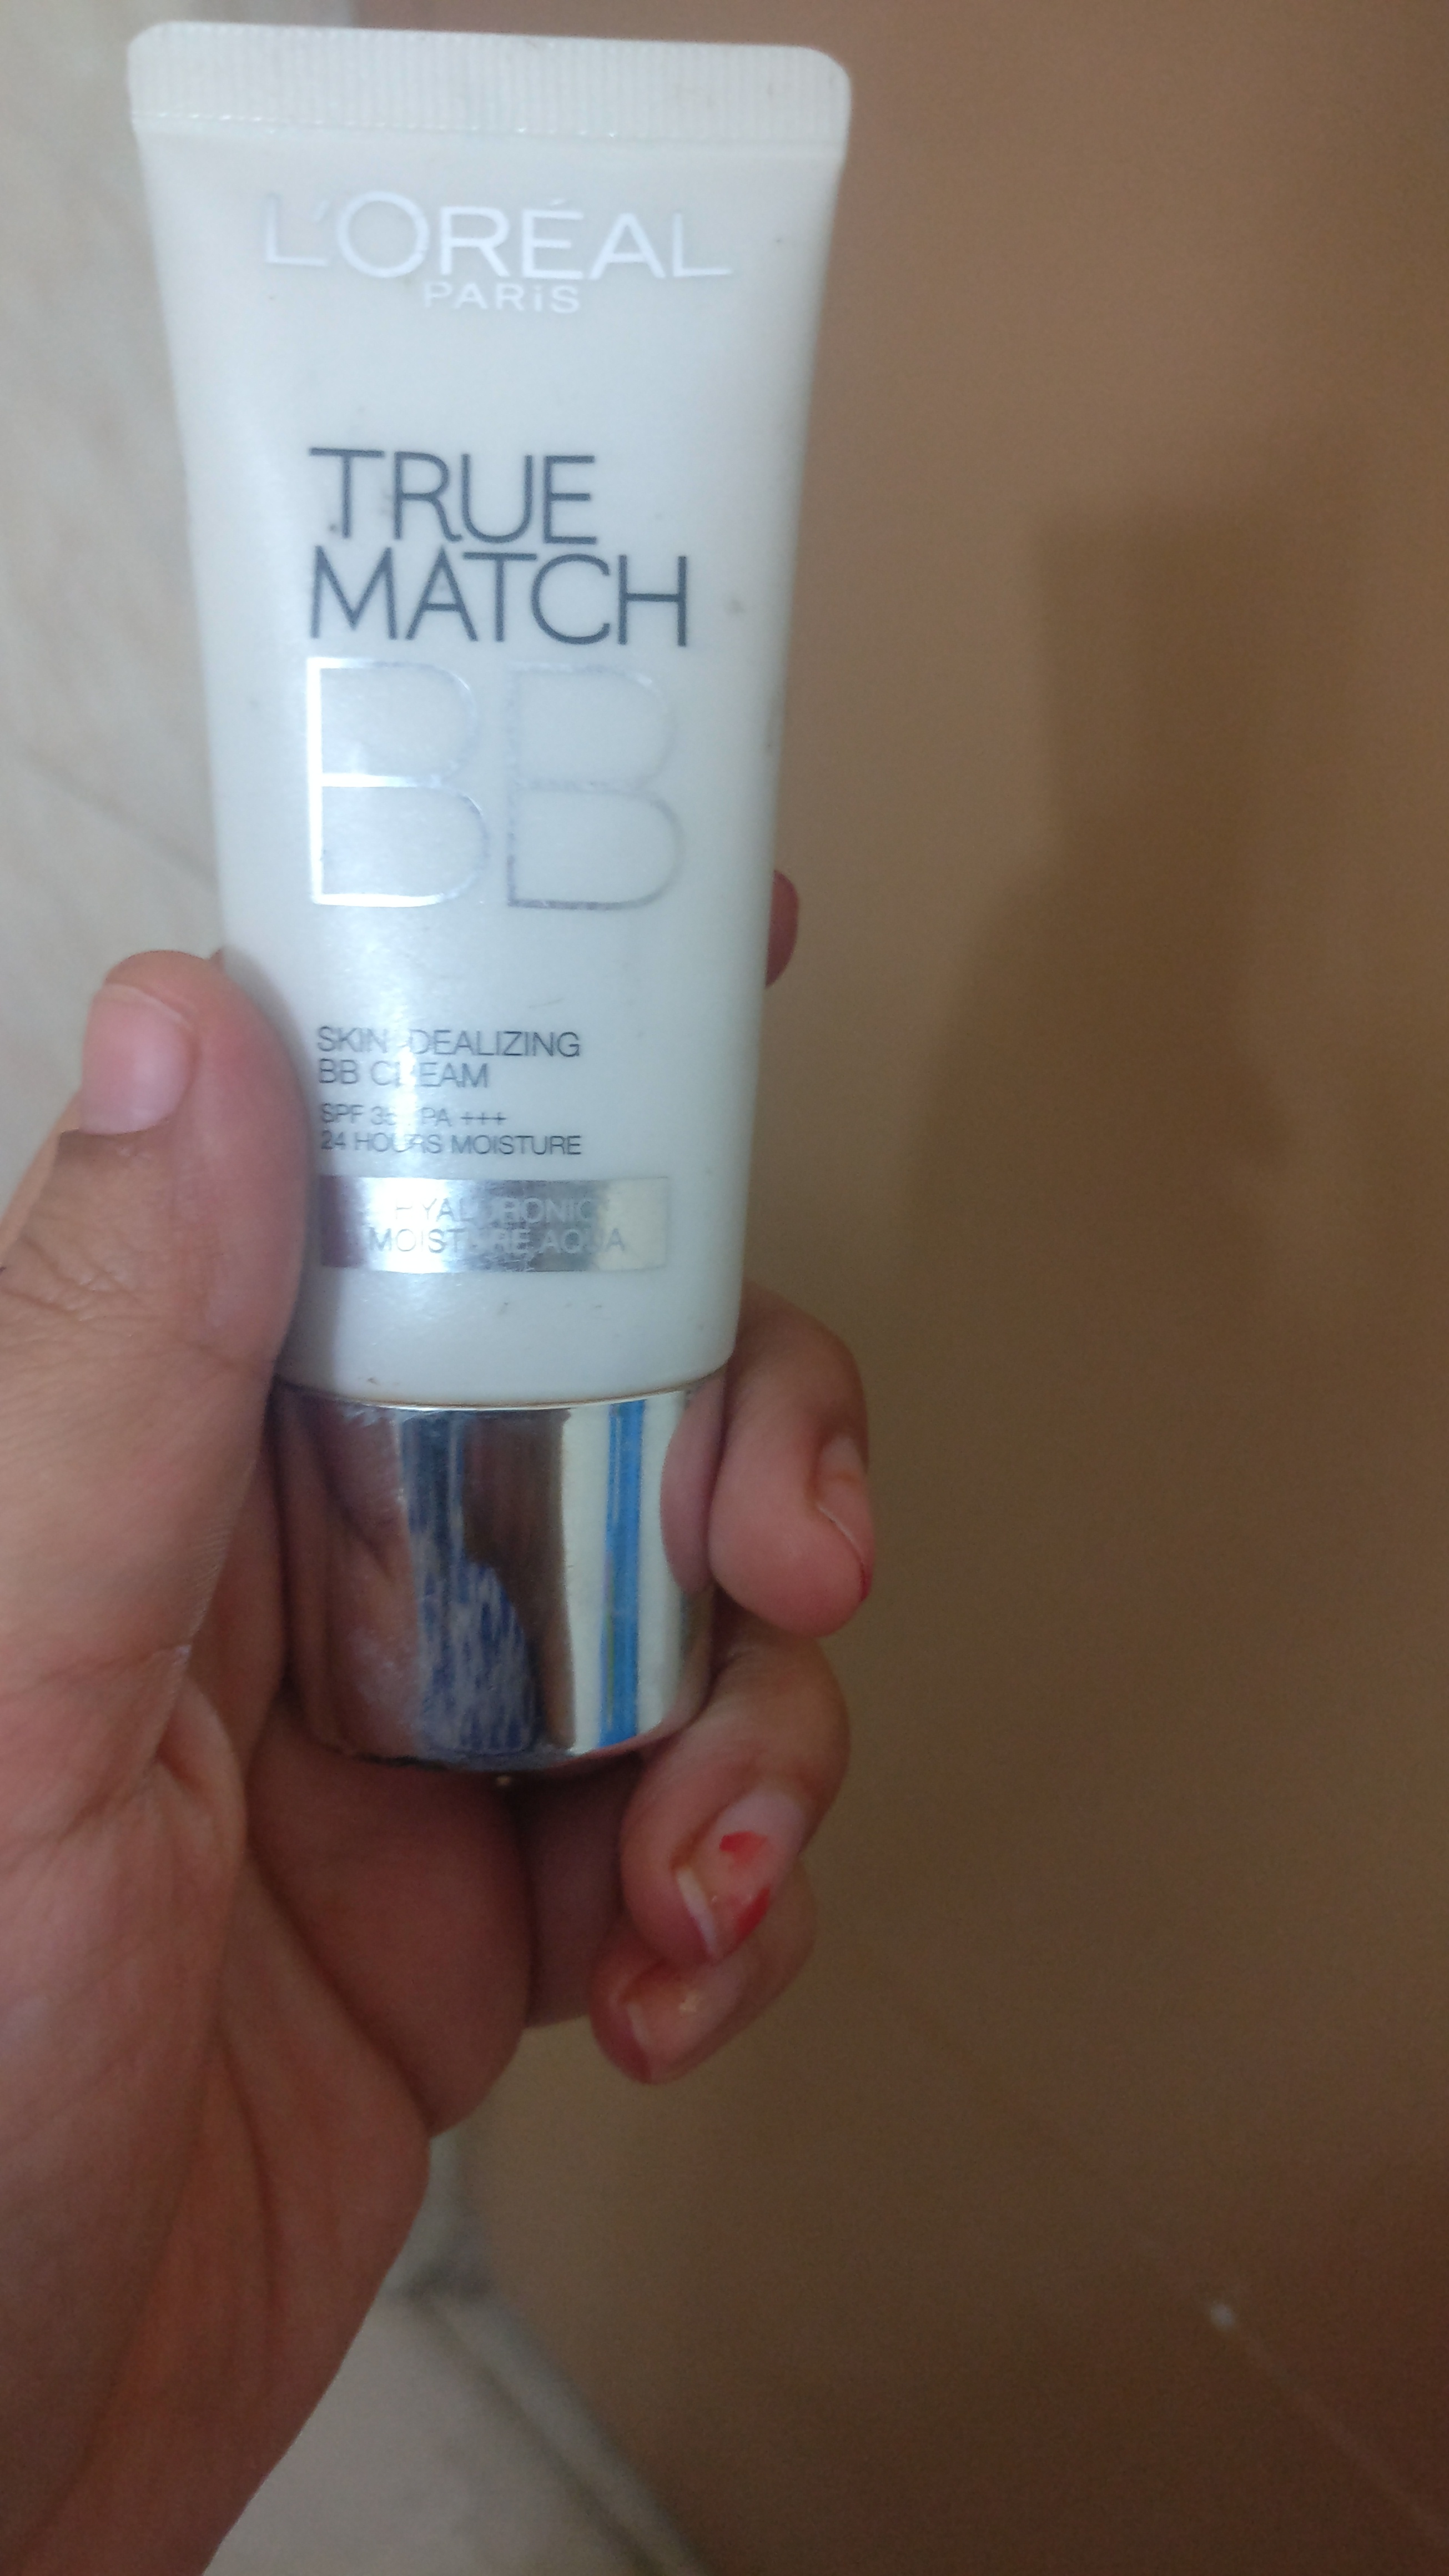 L'Oreal Paris True Match BB Cream -An all-in-one cream-By shrinkim